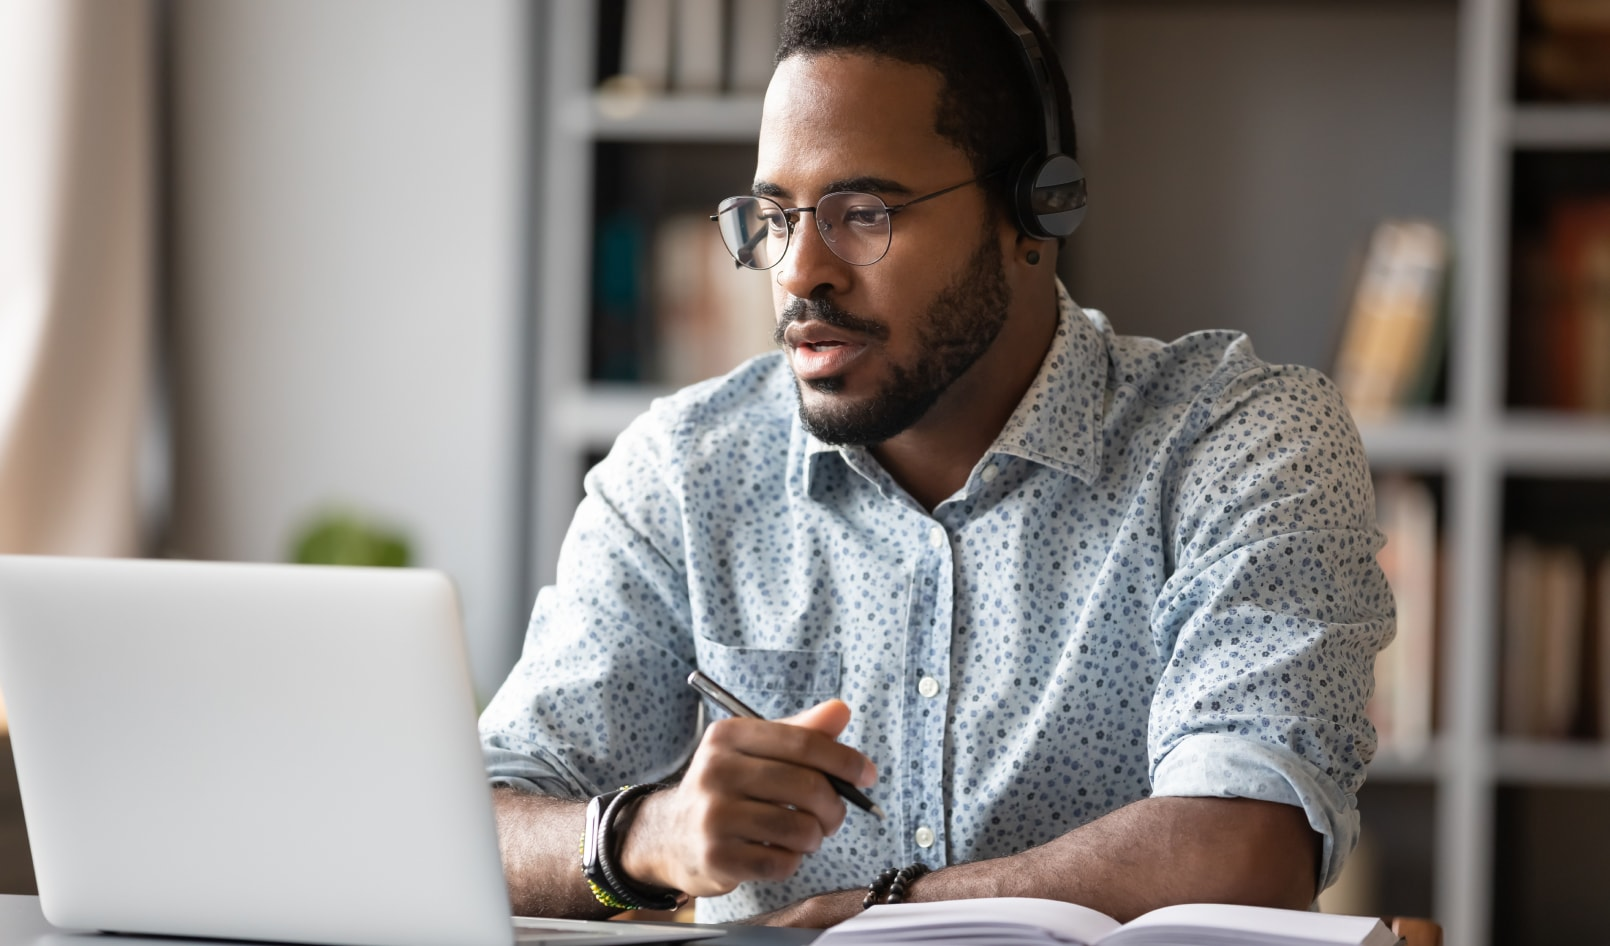 man on headset and working on laptop